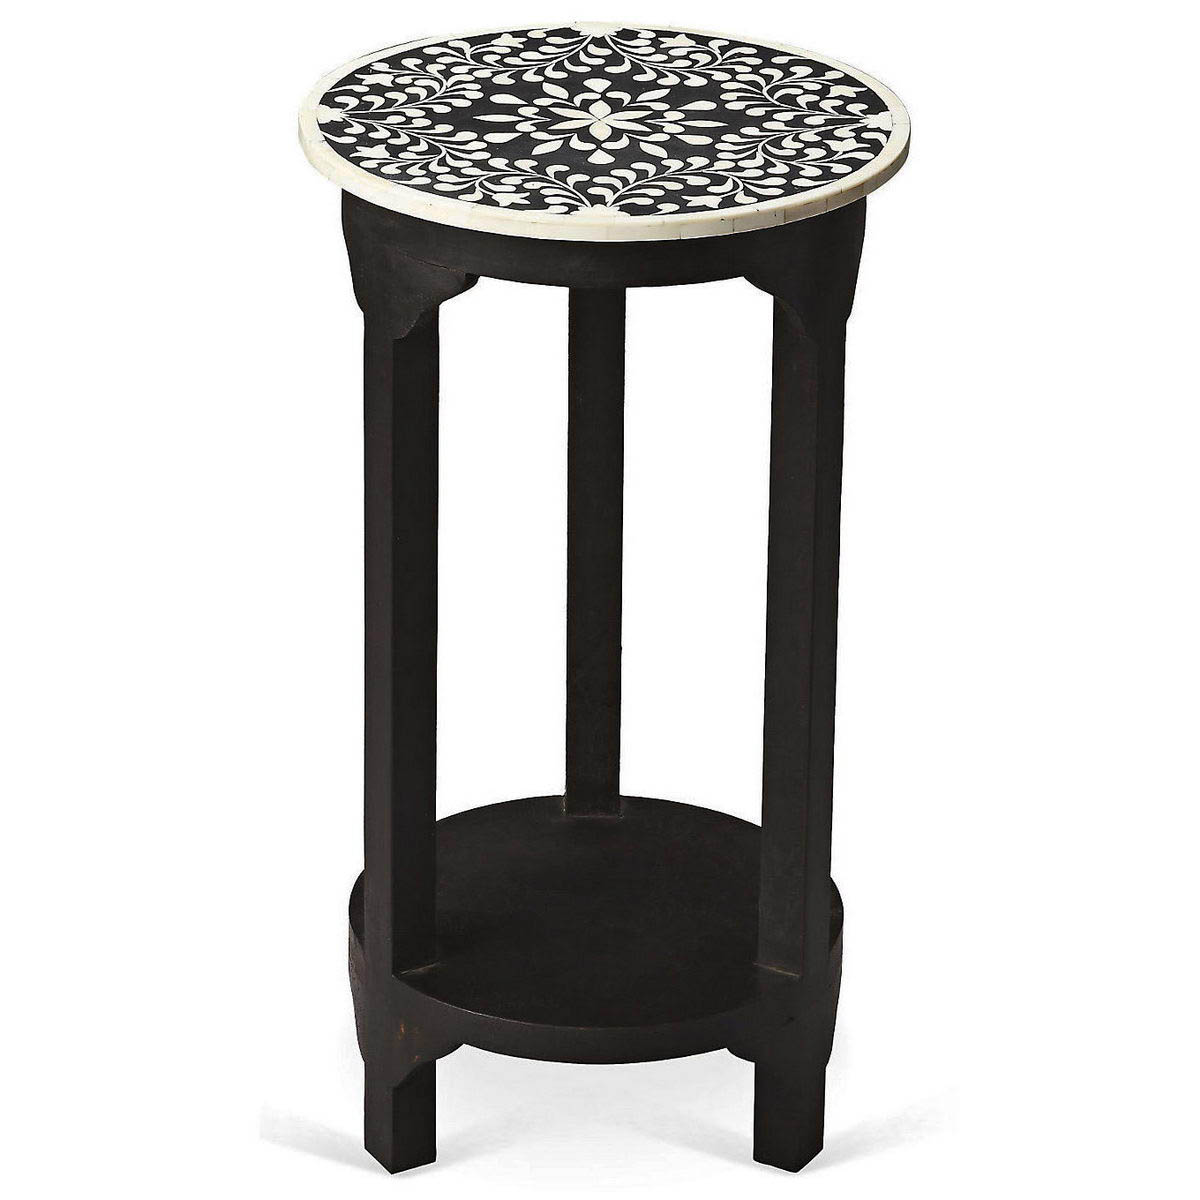 bone inlay side table vae variety arts emporium wood accent prev living room cabinets with glass doors jcpenney sofa under couch gray brown end tables mirrored drawer small